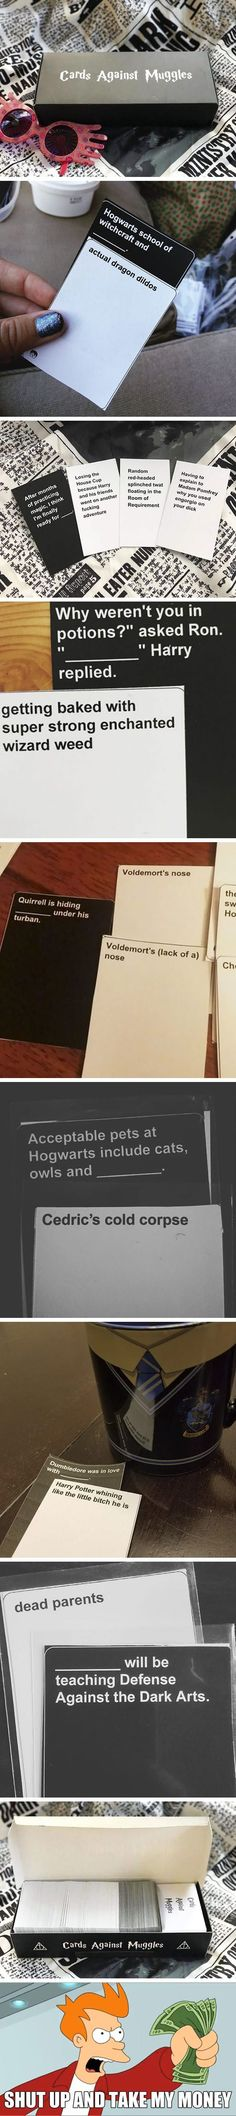 Harry Potter Game 'Cards Against Muggles' Exists And It's Riddikulus